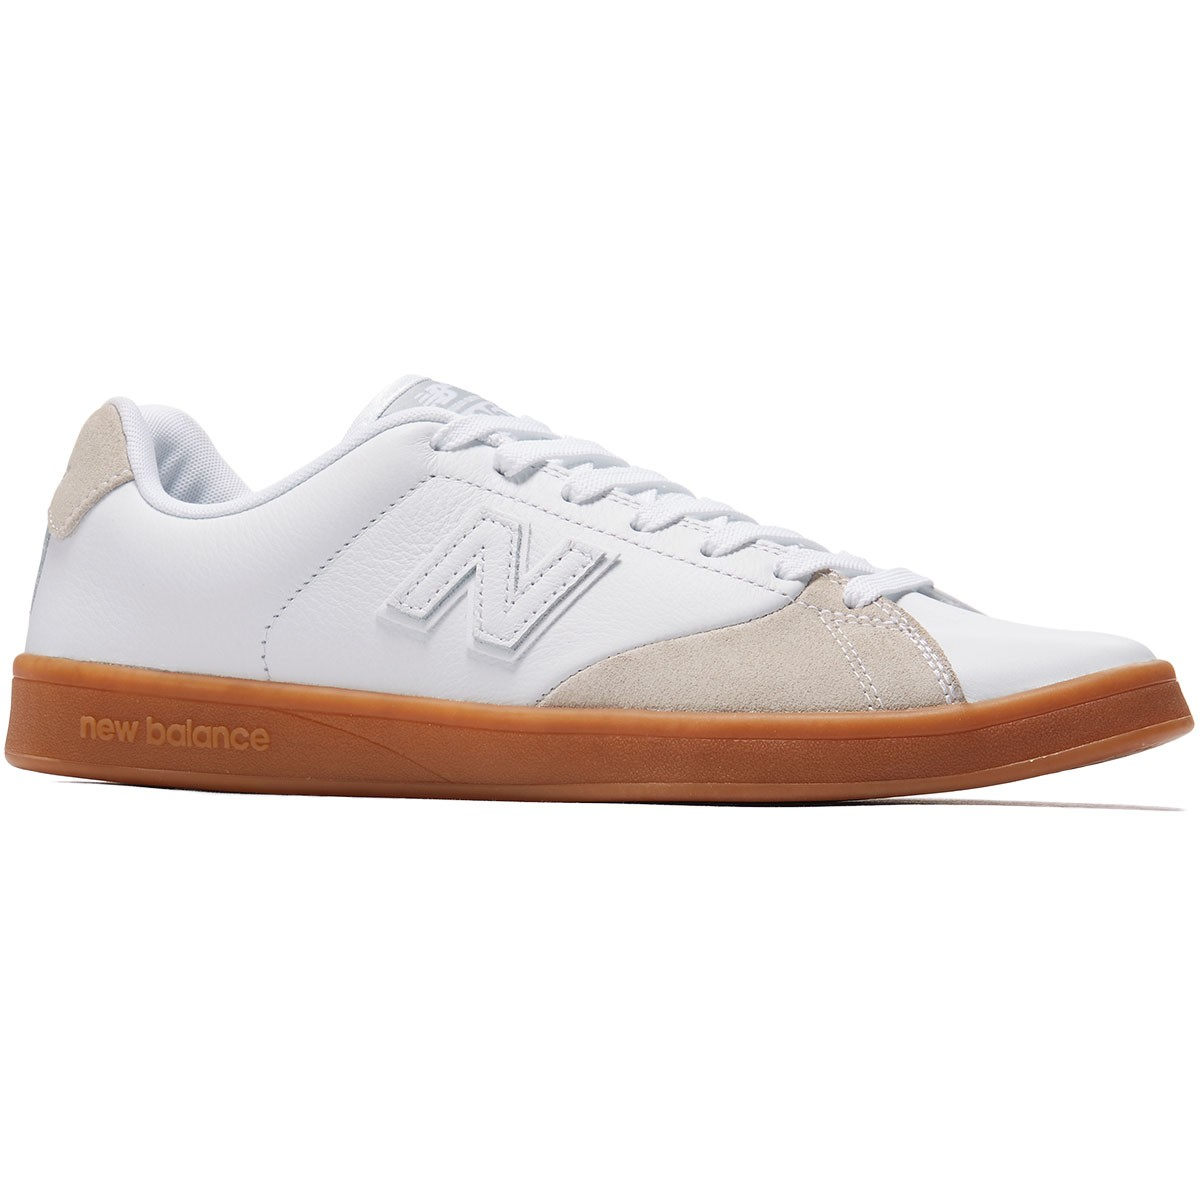 taille 40 95089 96f0f New Balance 505 Shoes